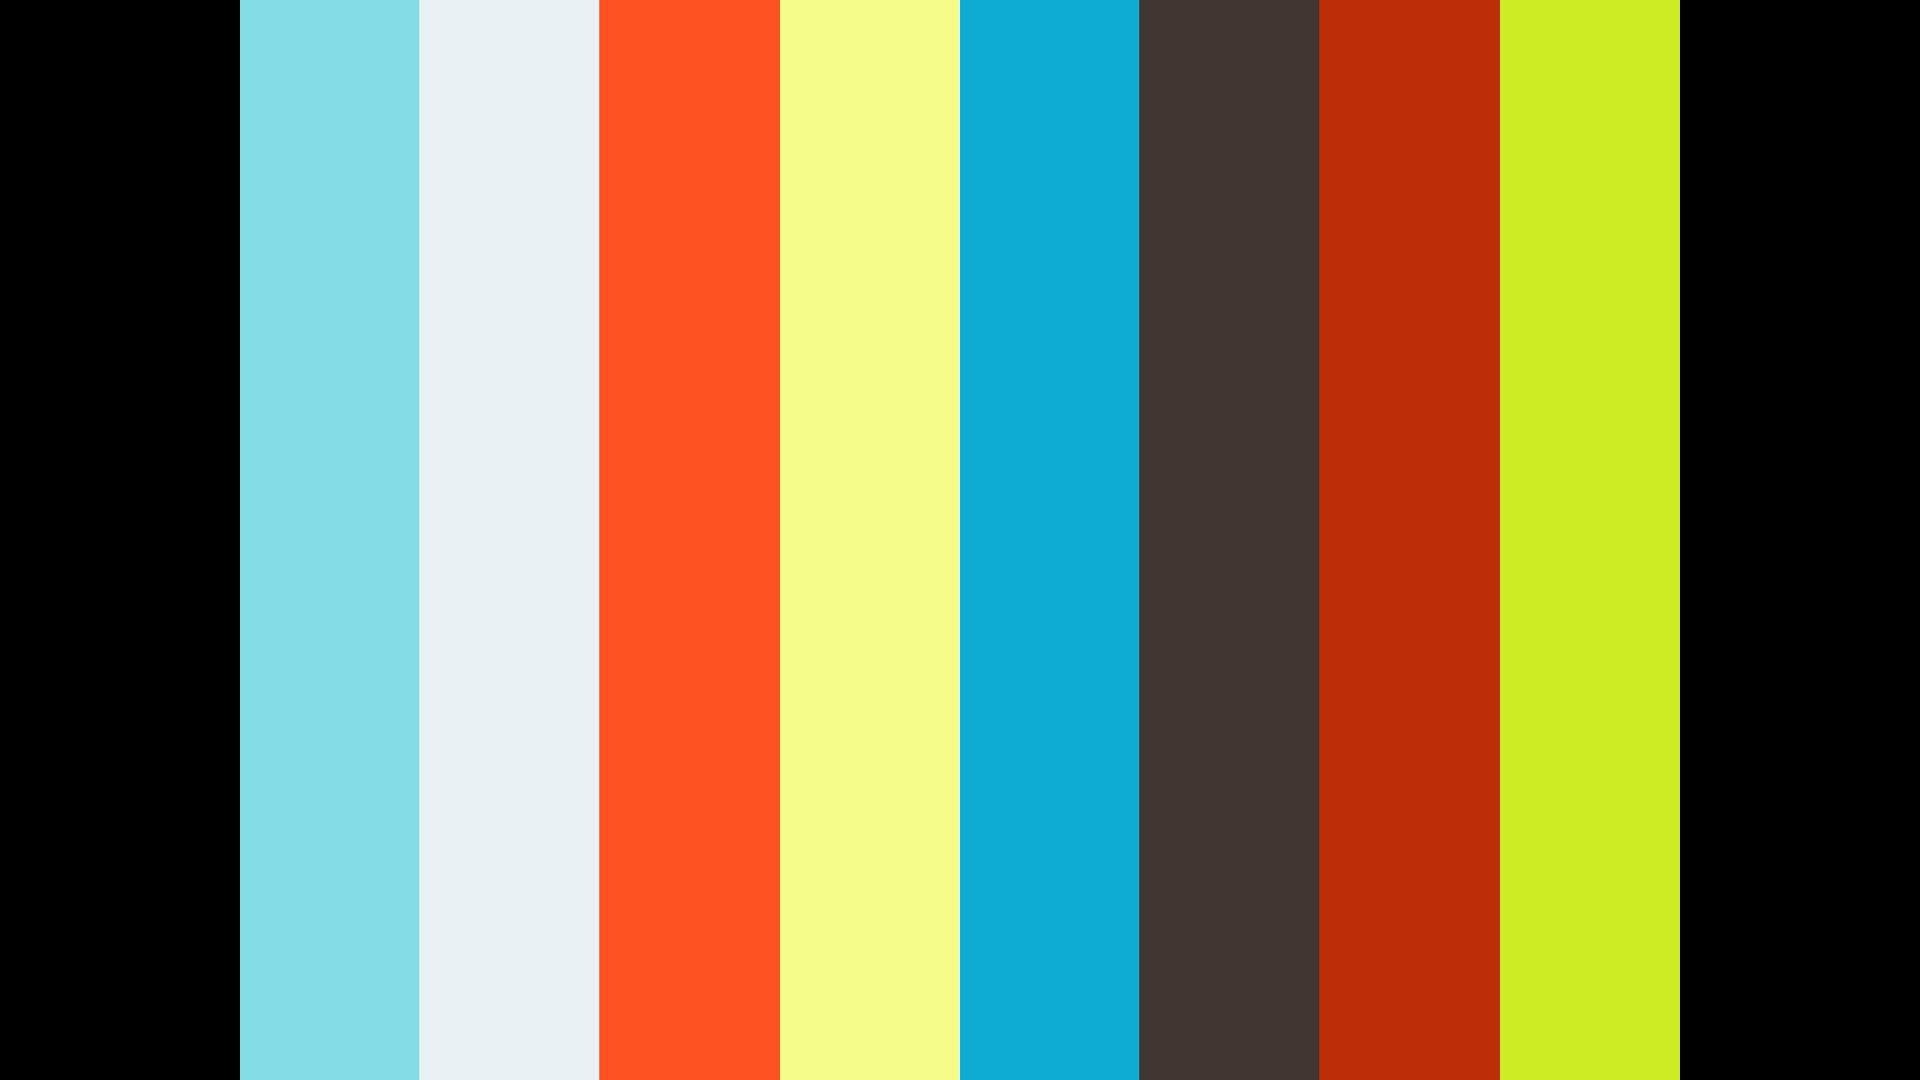 Prospecting for Gold (November 06, 2019)